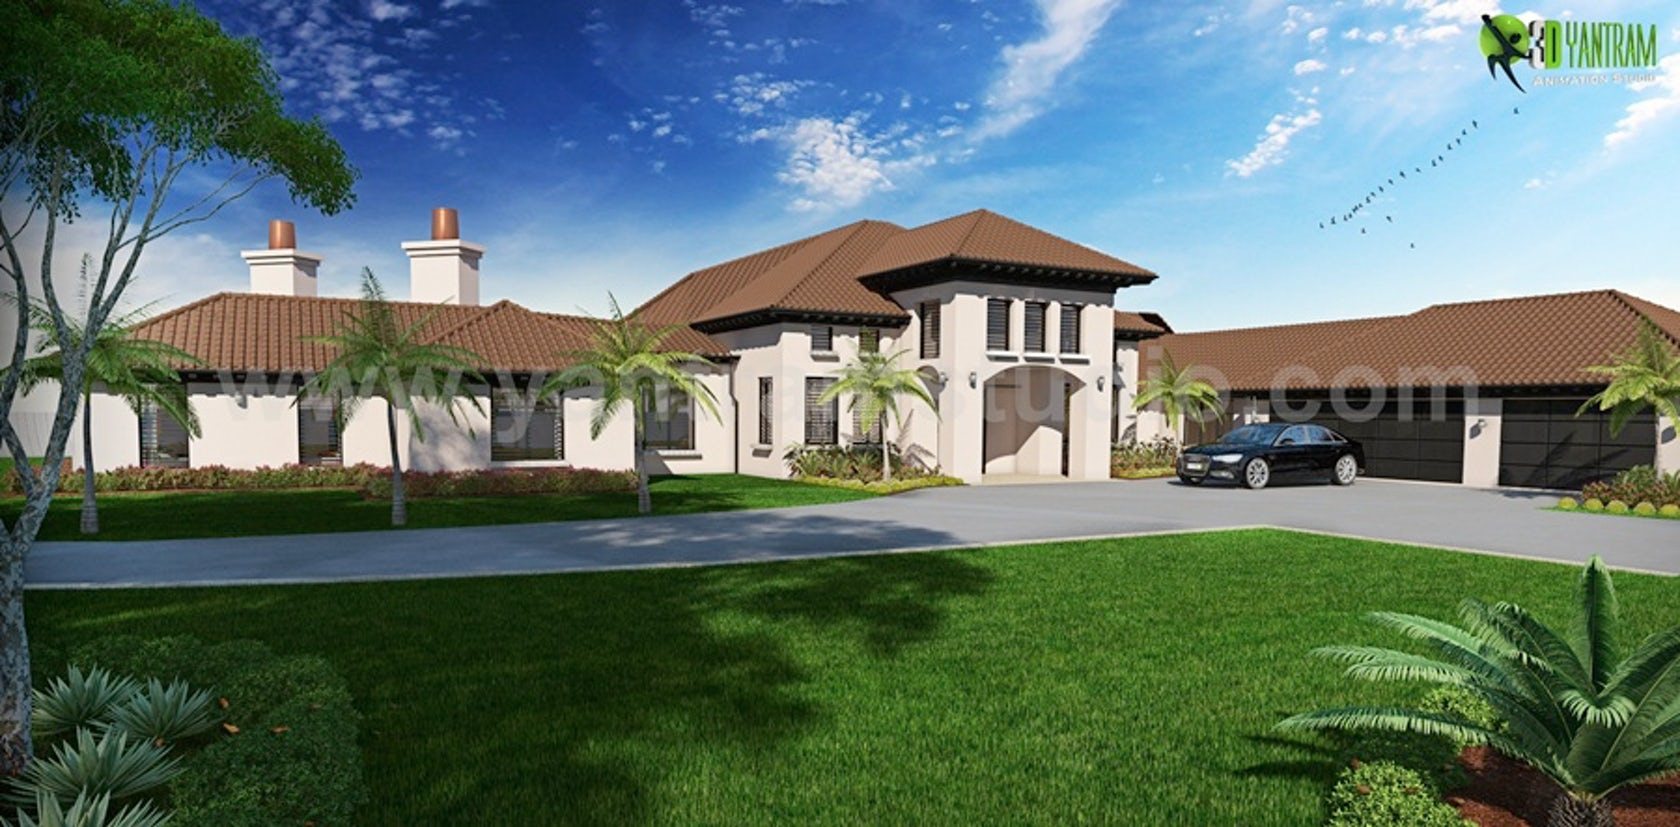 Dream house residential 3d rendering front back view for Dream house 3d